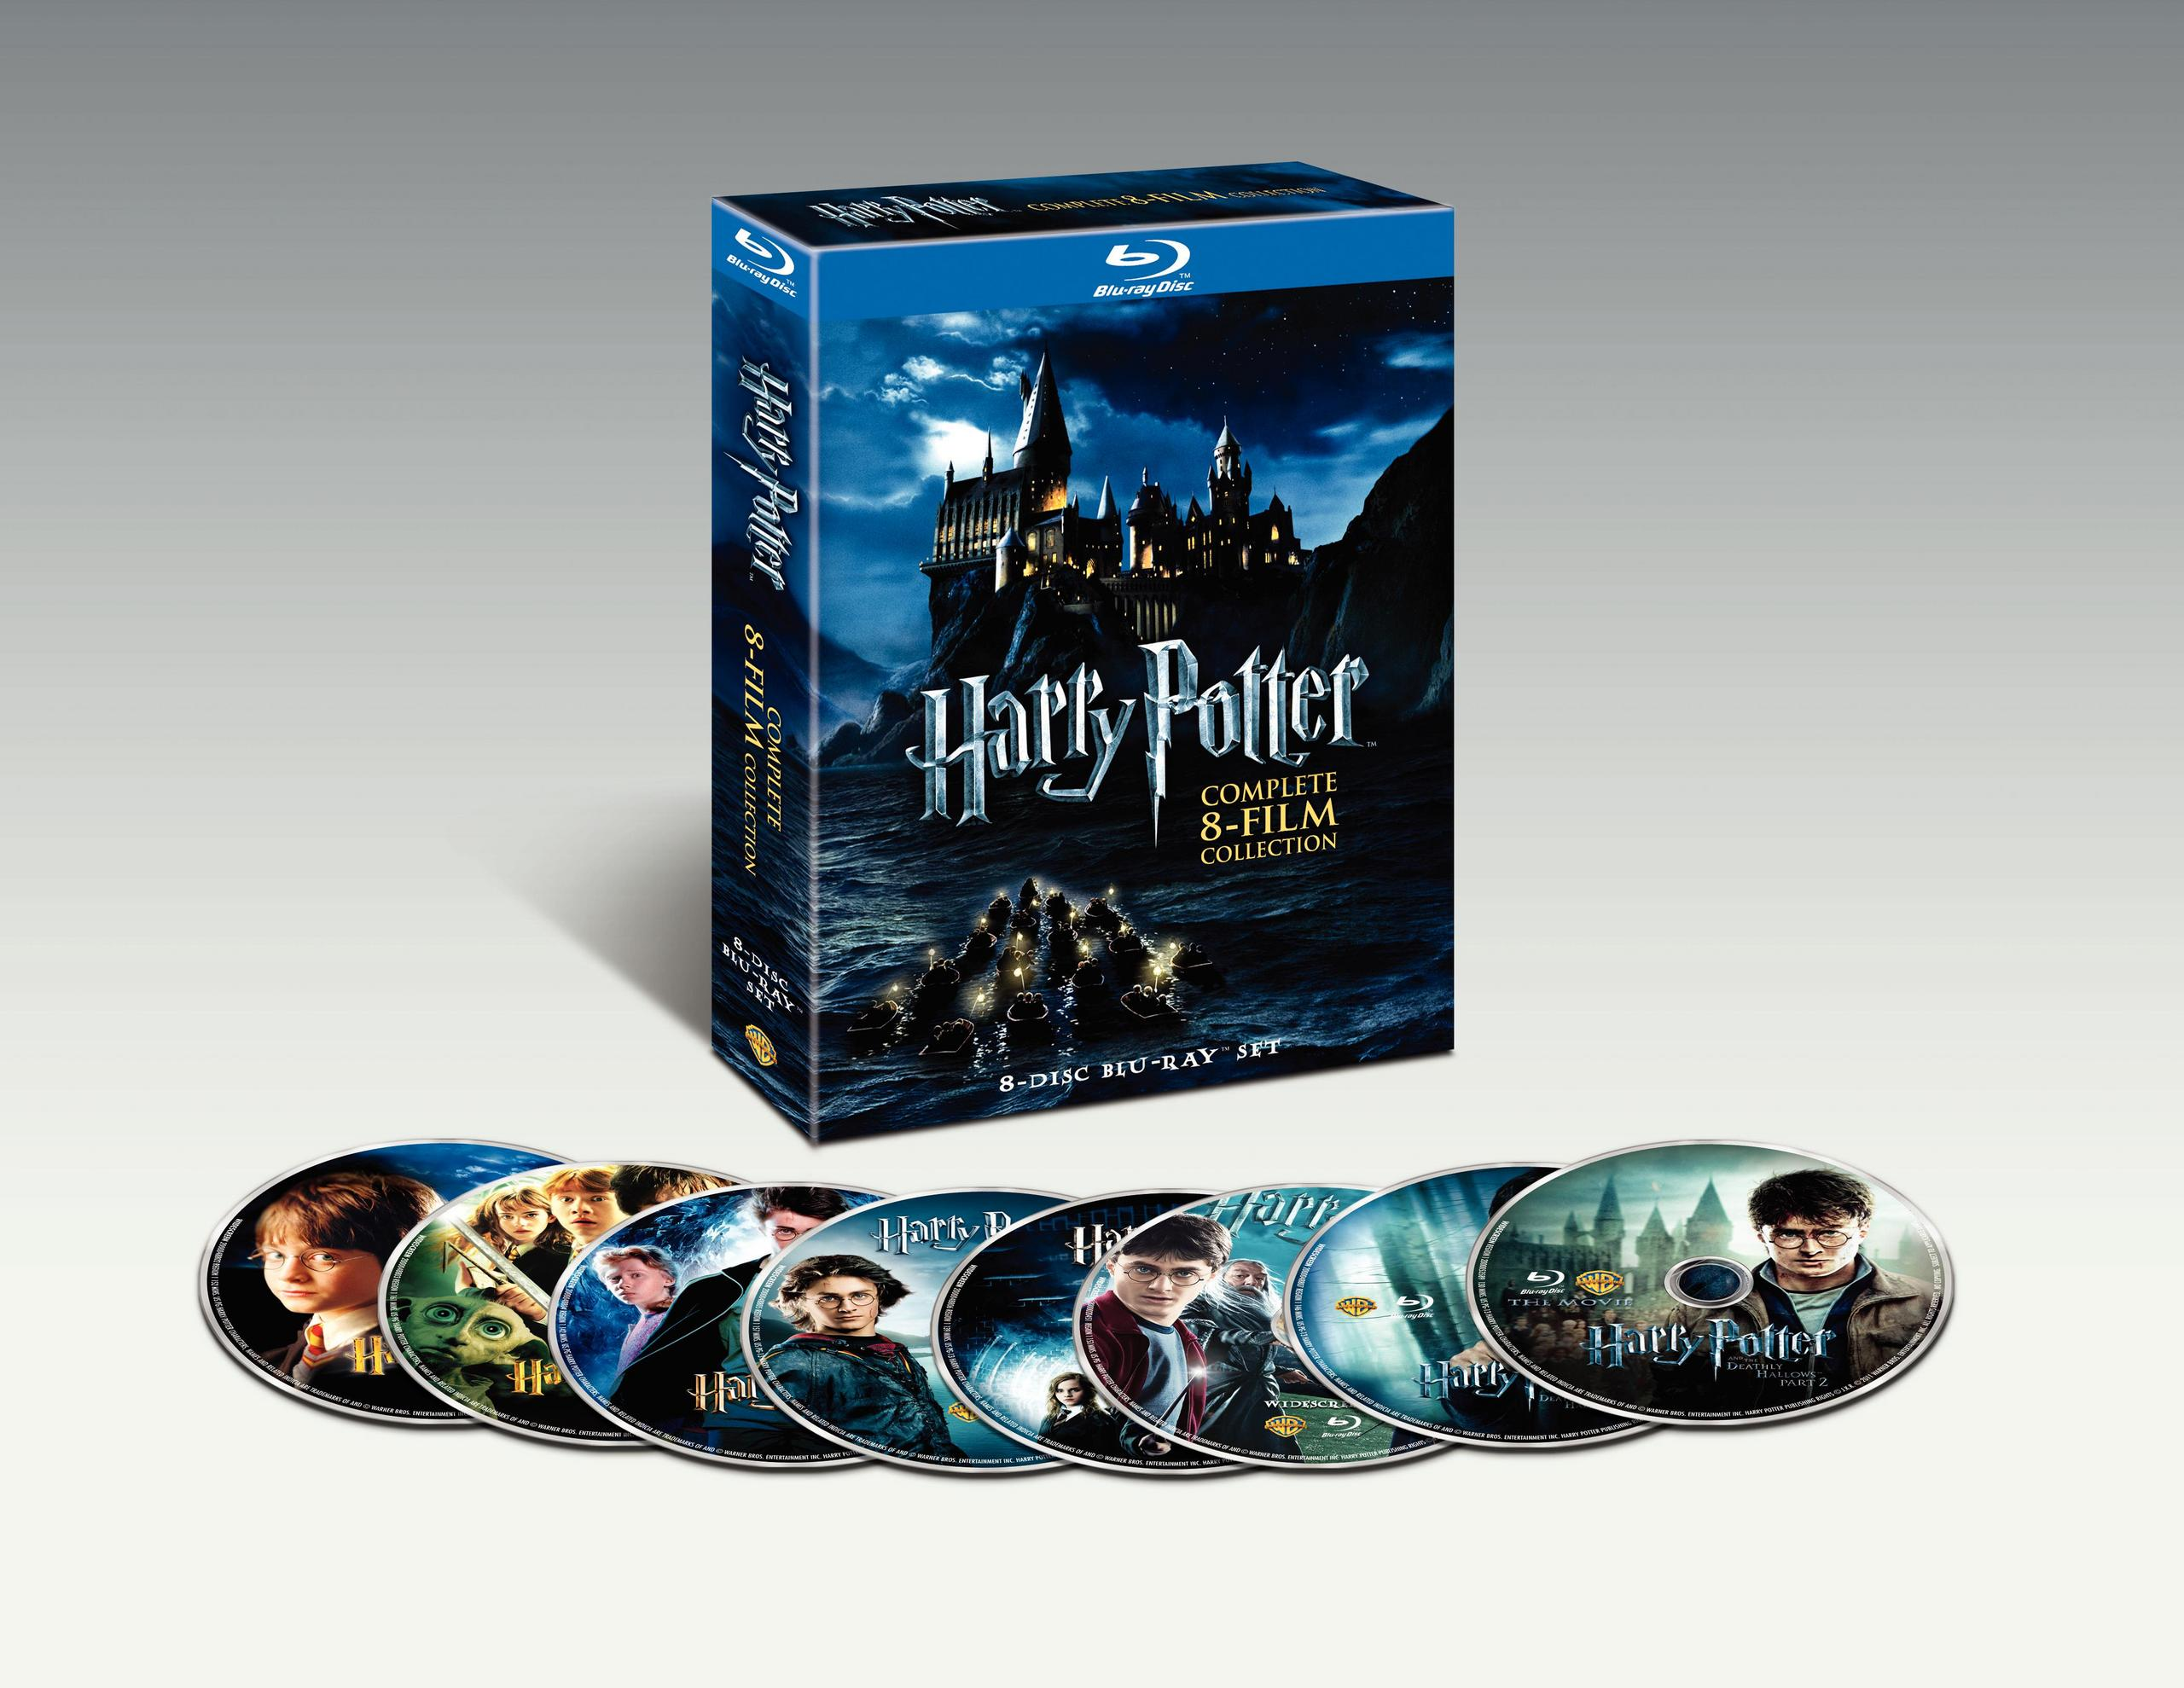 coffret blu ray harry potter coffret blu ray harry potter sur enperdresonlapin. Black Bedroom Furniture Sets. Home Design Ideas